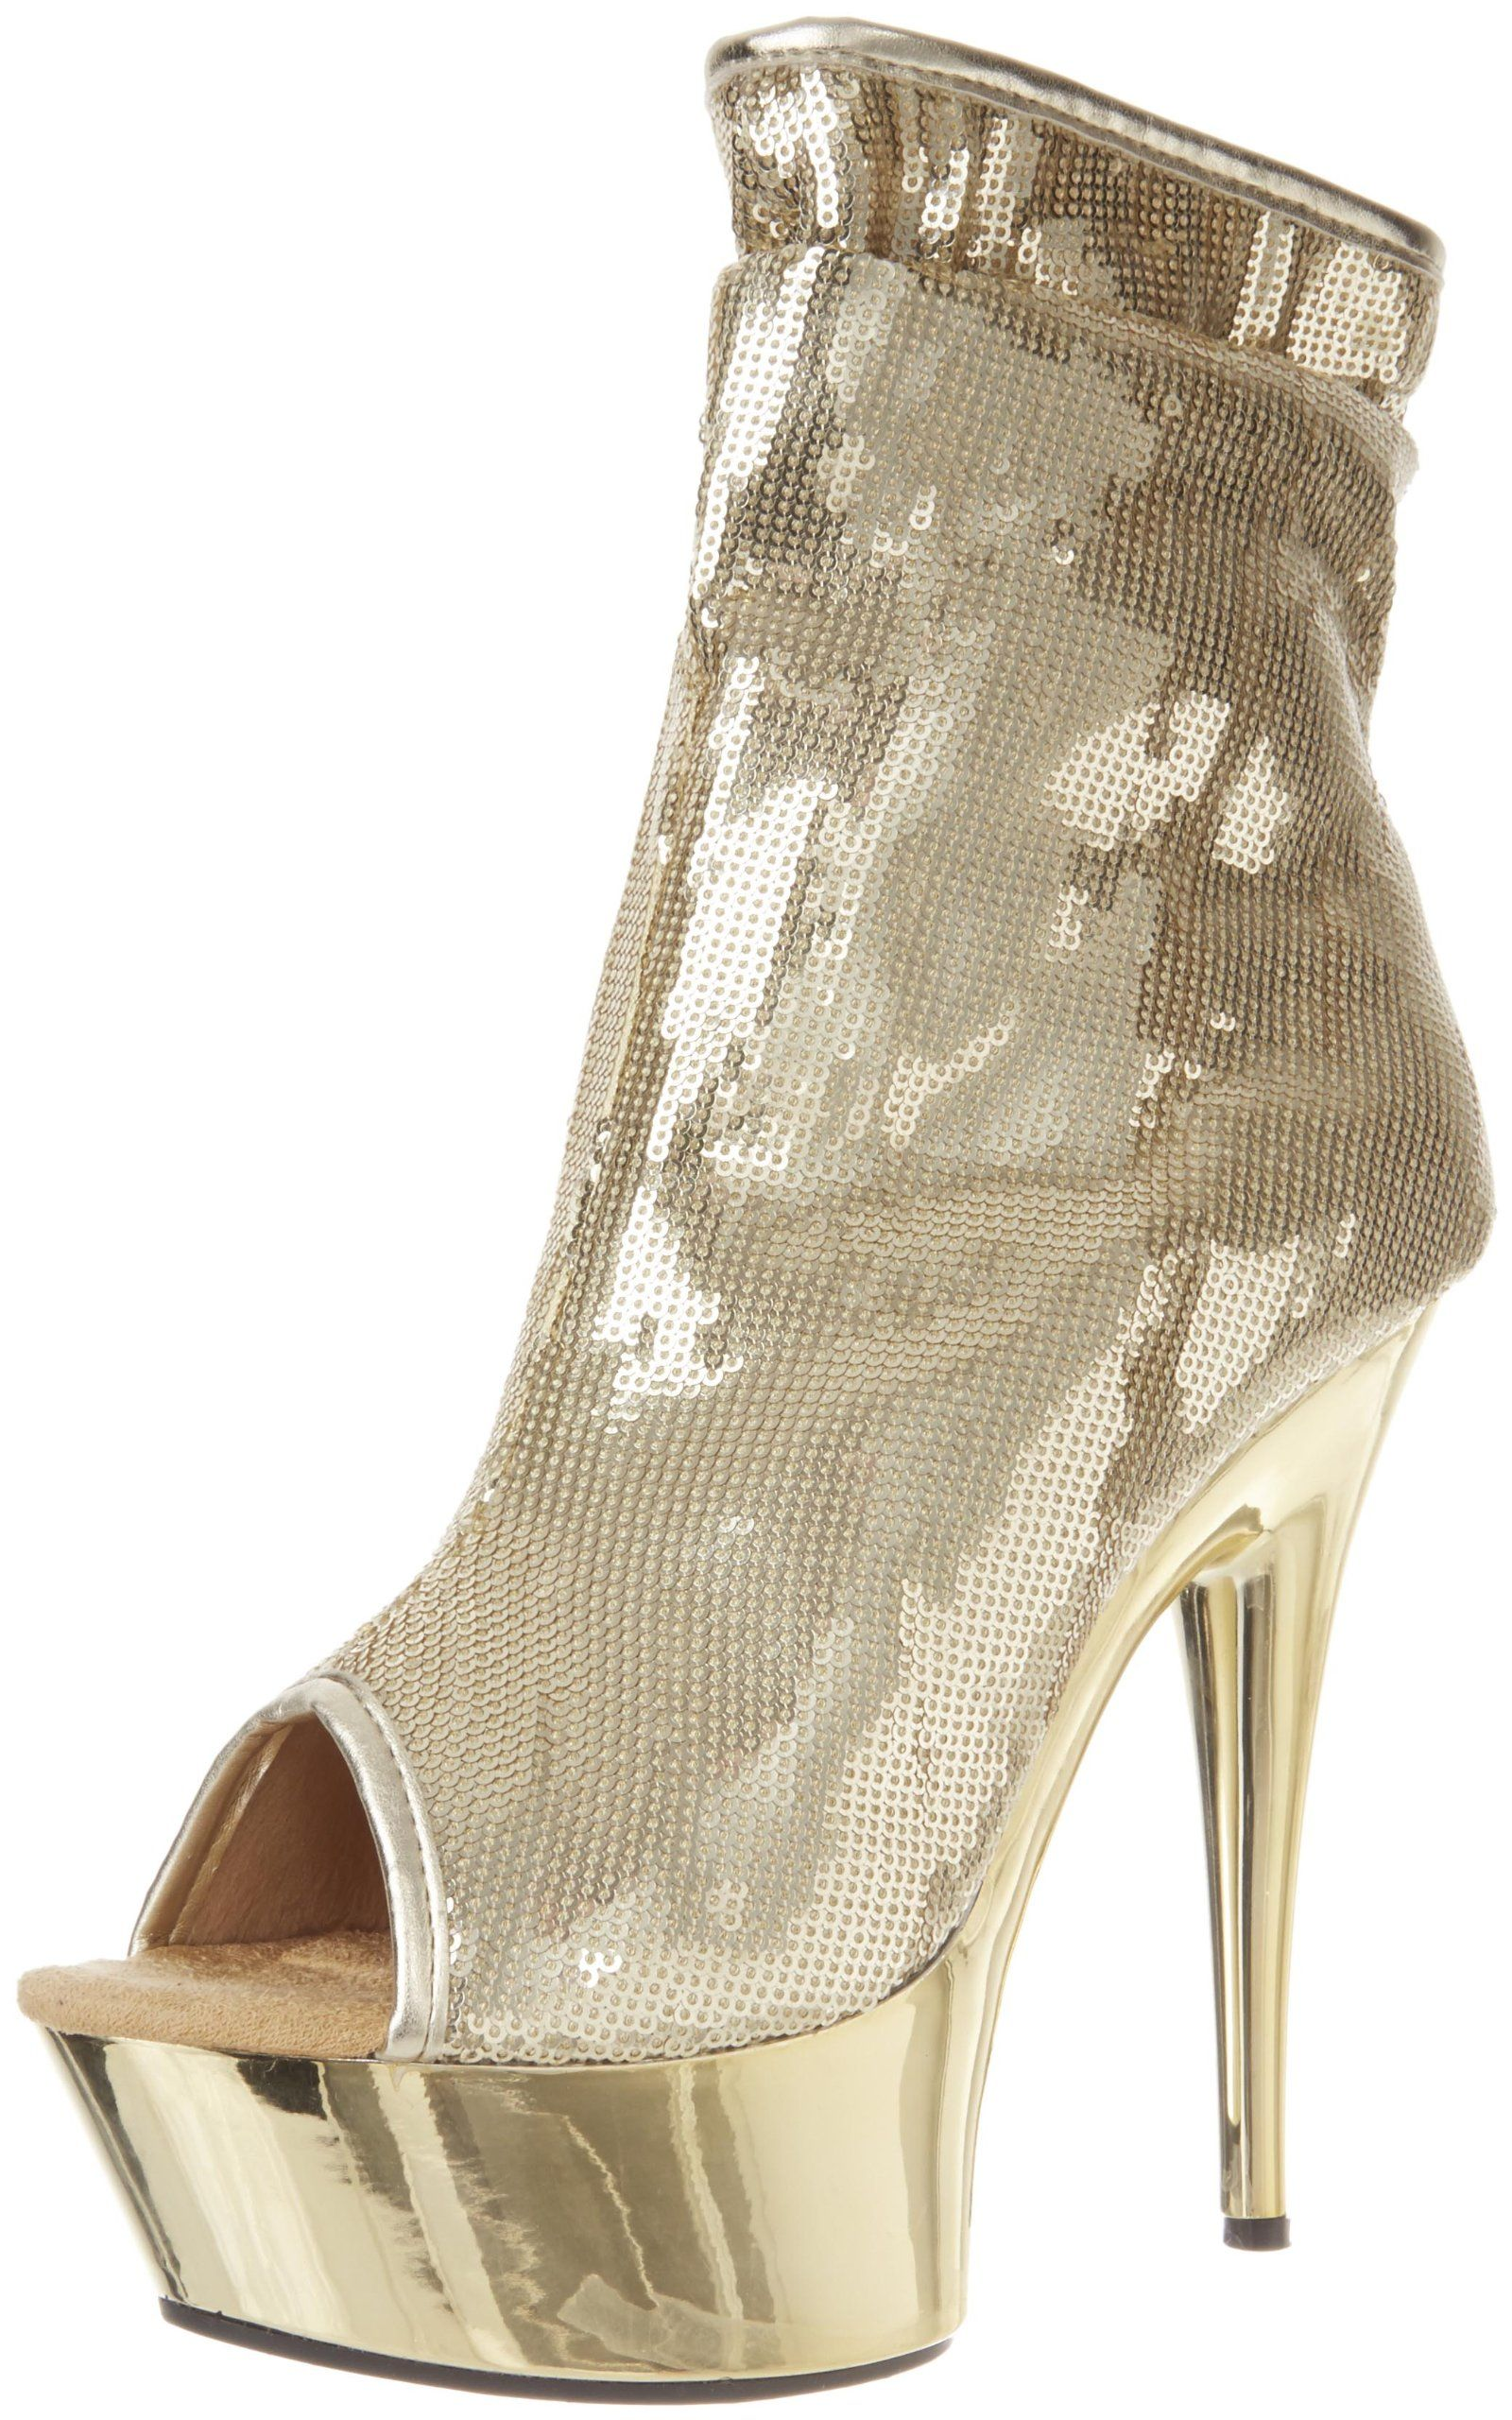 d5bf22c5ff90 The Highest Heel Womens Amber411 BootieGold Sequin8 M US   Read more at the  image link. (This is an affiliate link)